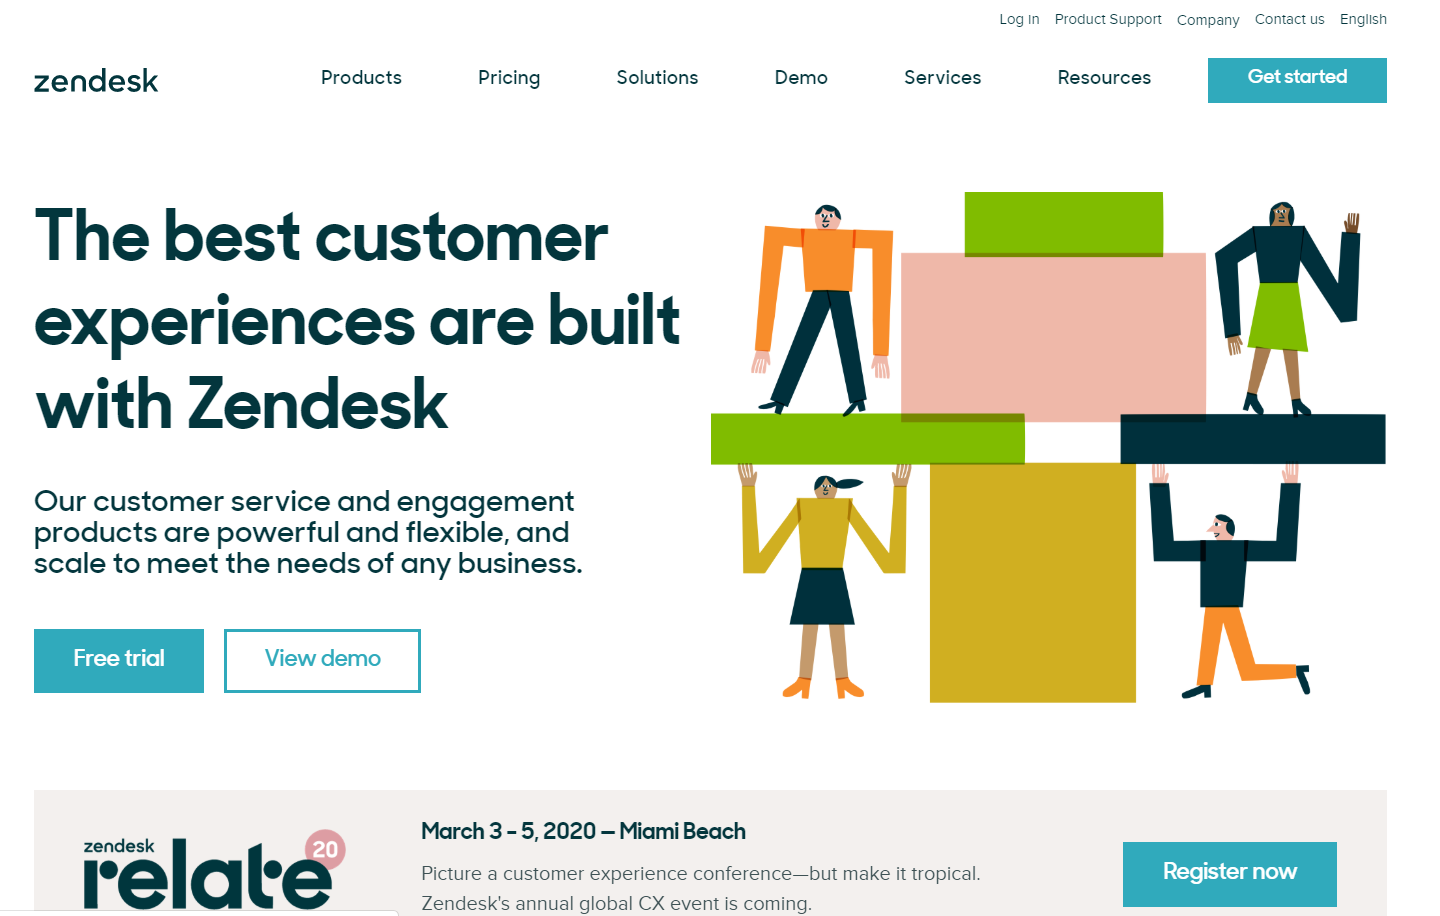 Zendesk's updated branding continued to increase brand trust because they maintained a consistent theme across all channels.